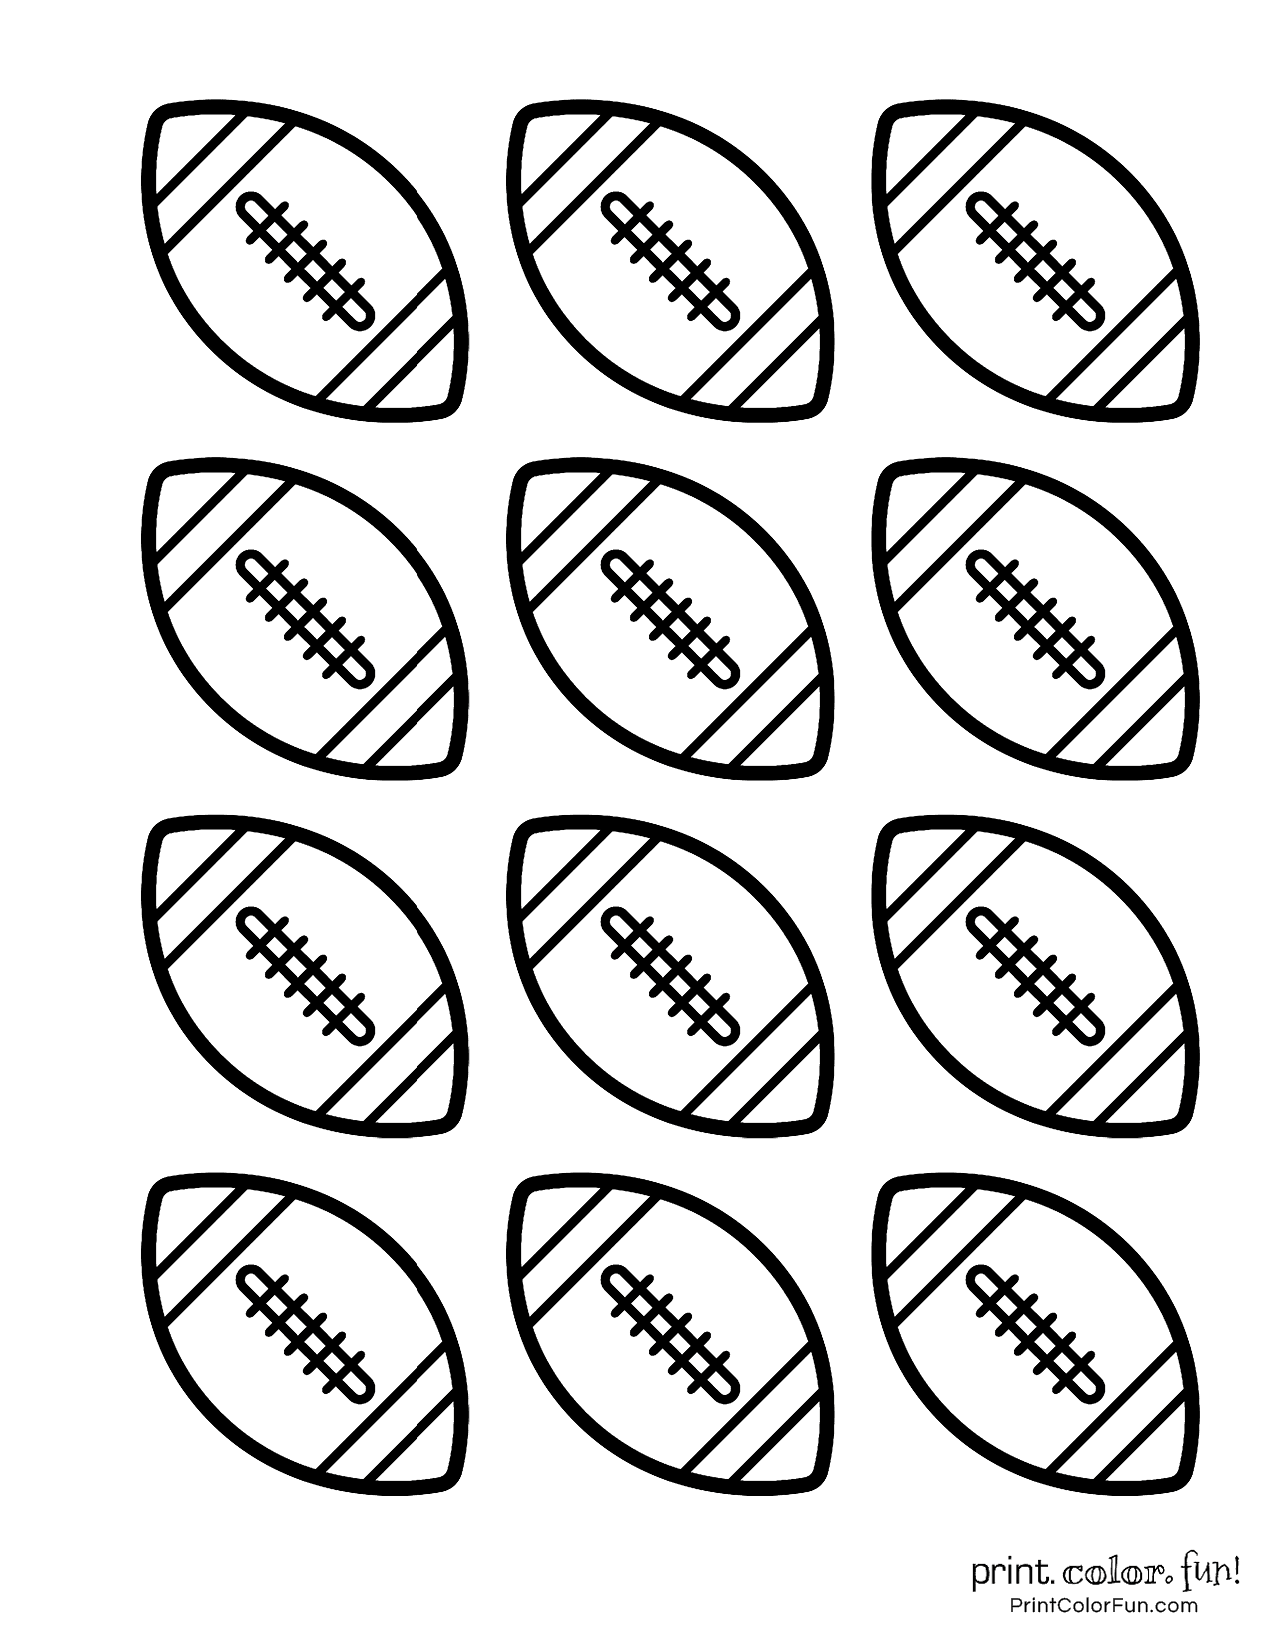 small football coloring pages - photo#12